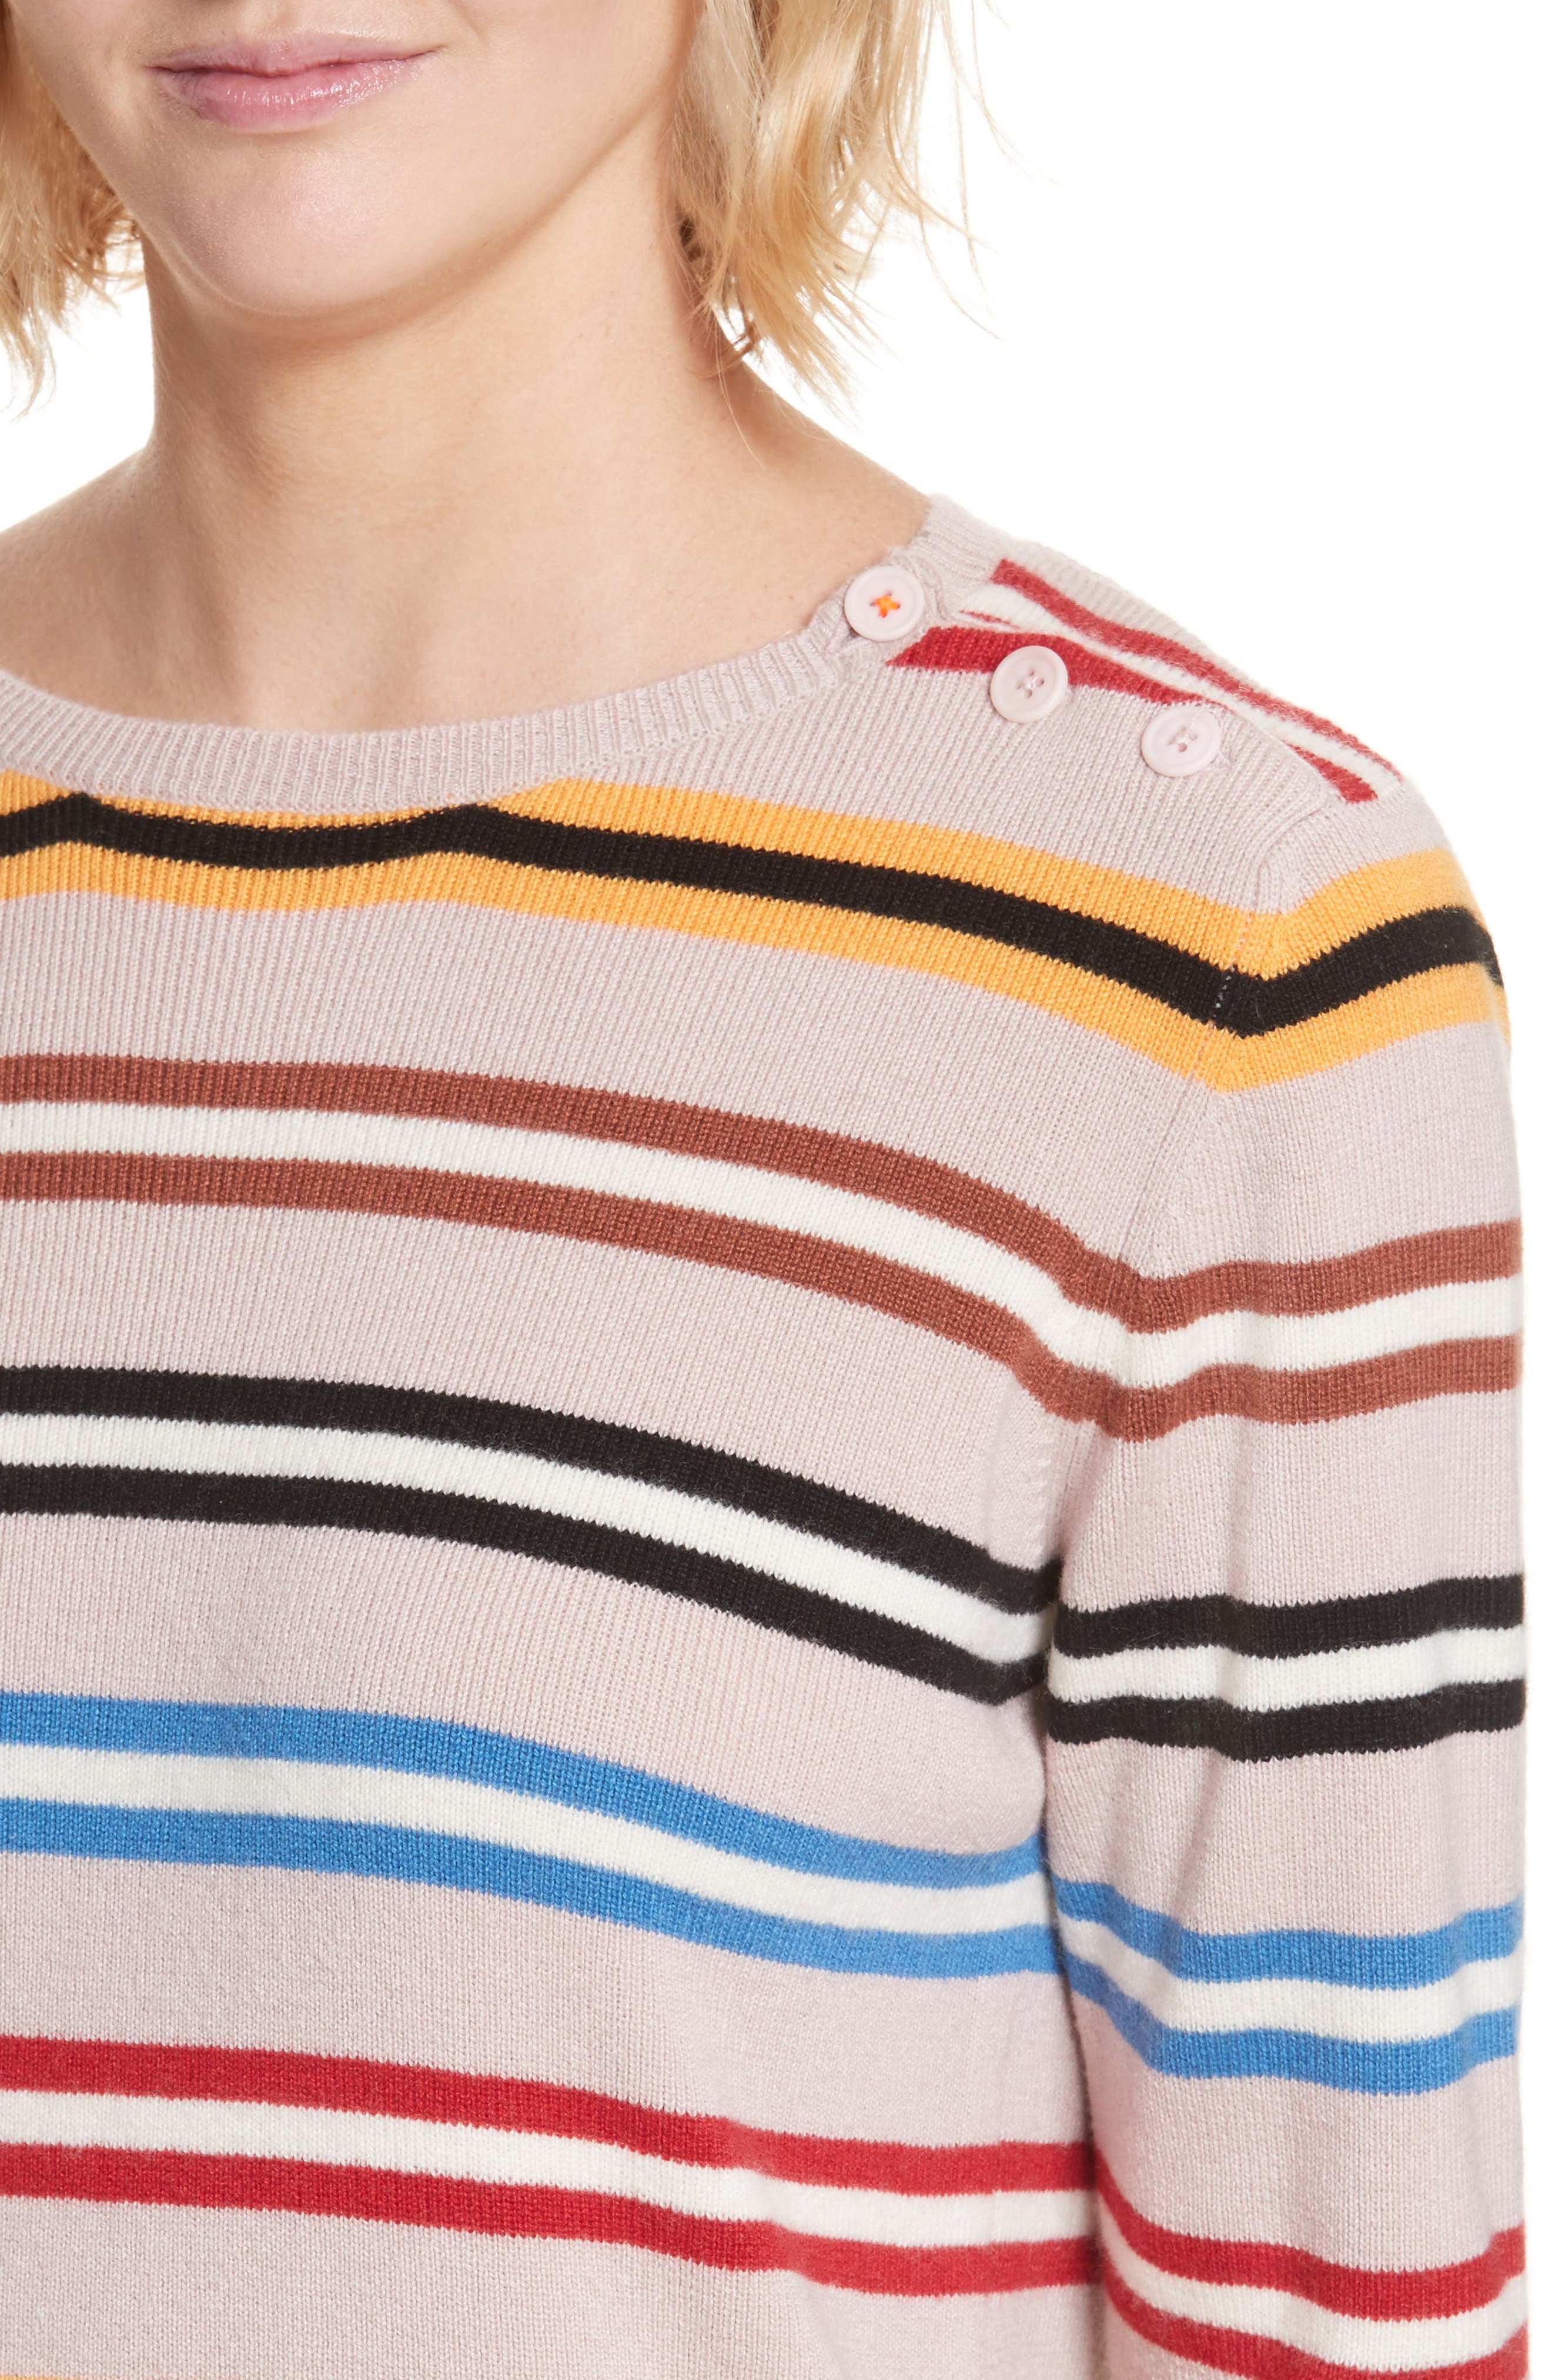 Stripe Cashmere Sweater,                             Alternate thumbnail 4, color,                             250